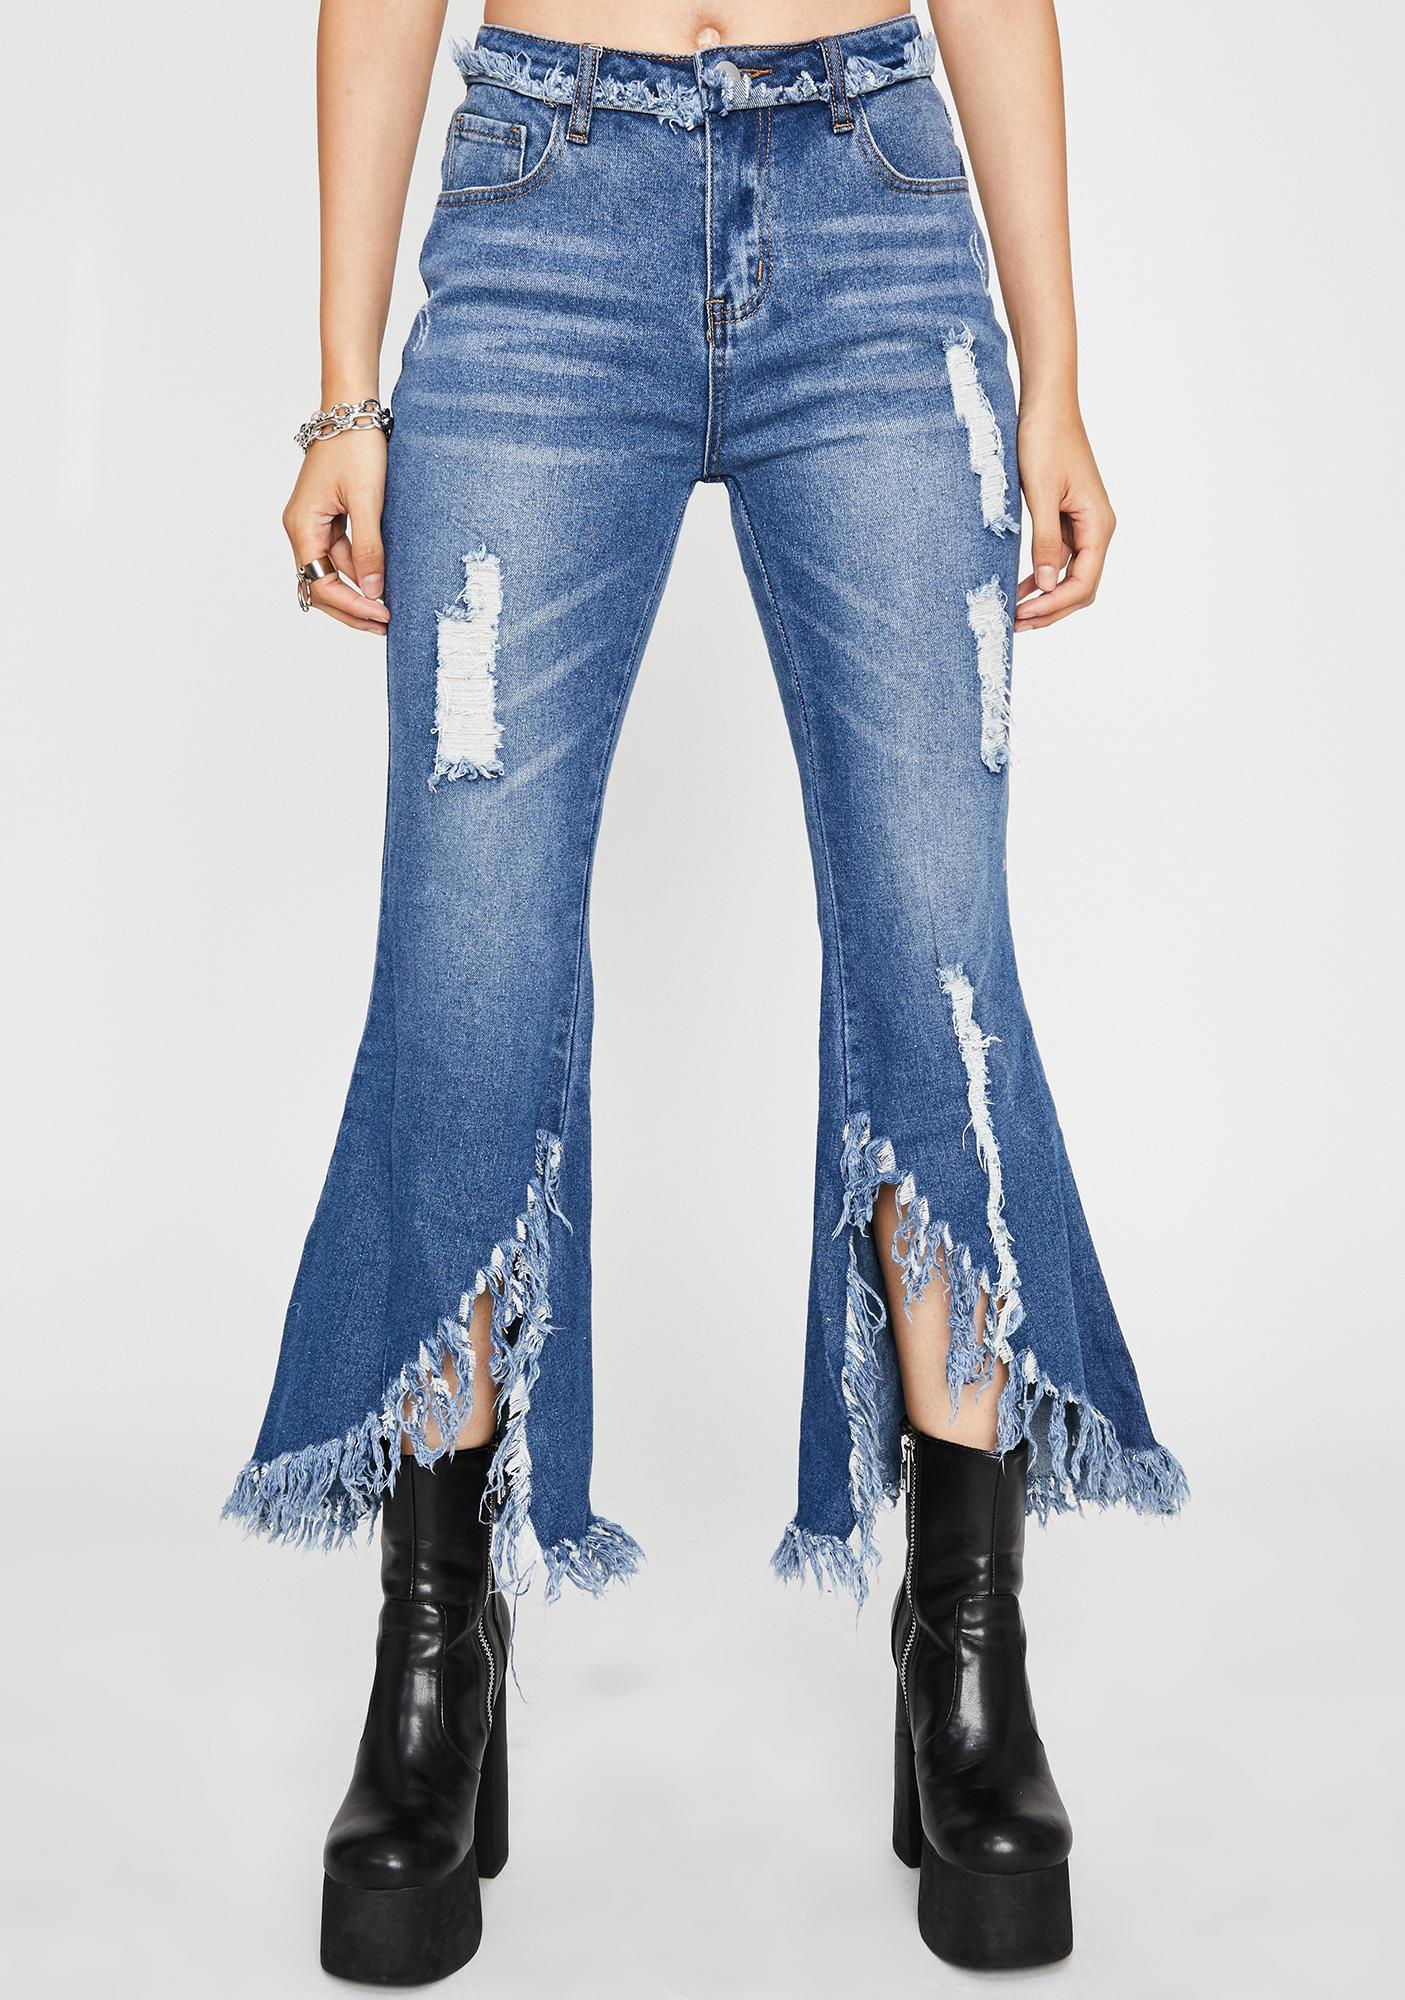 Hitchhikin' Hottie Ripped Jeans